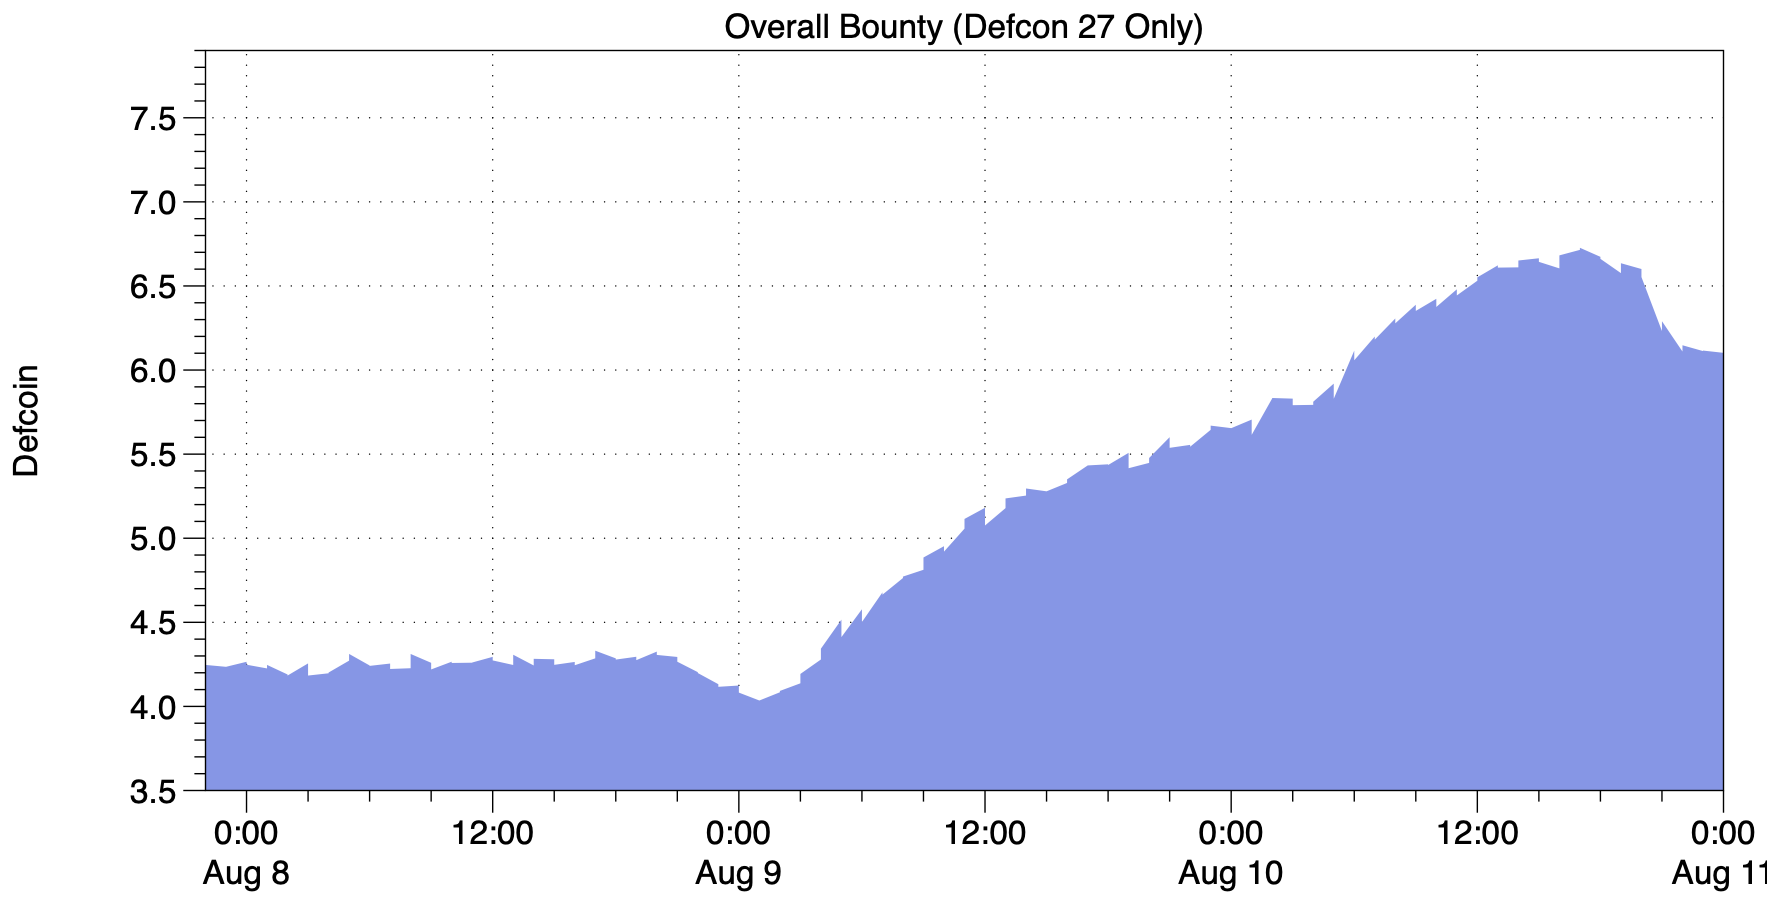 Overall-Bounty-Size---DC27